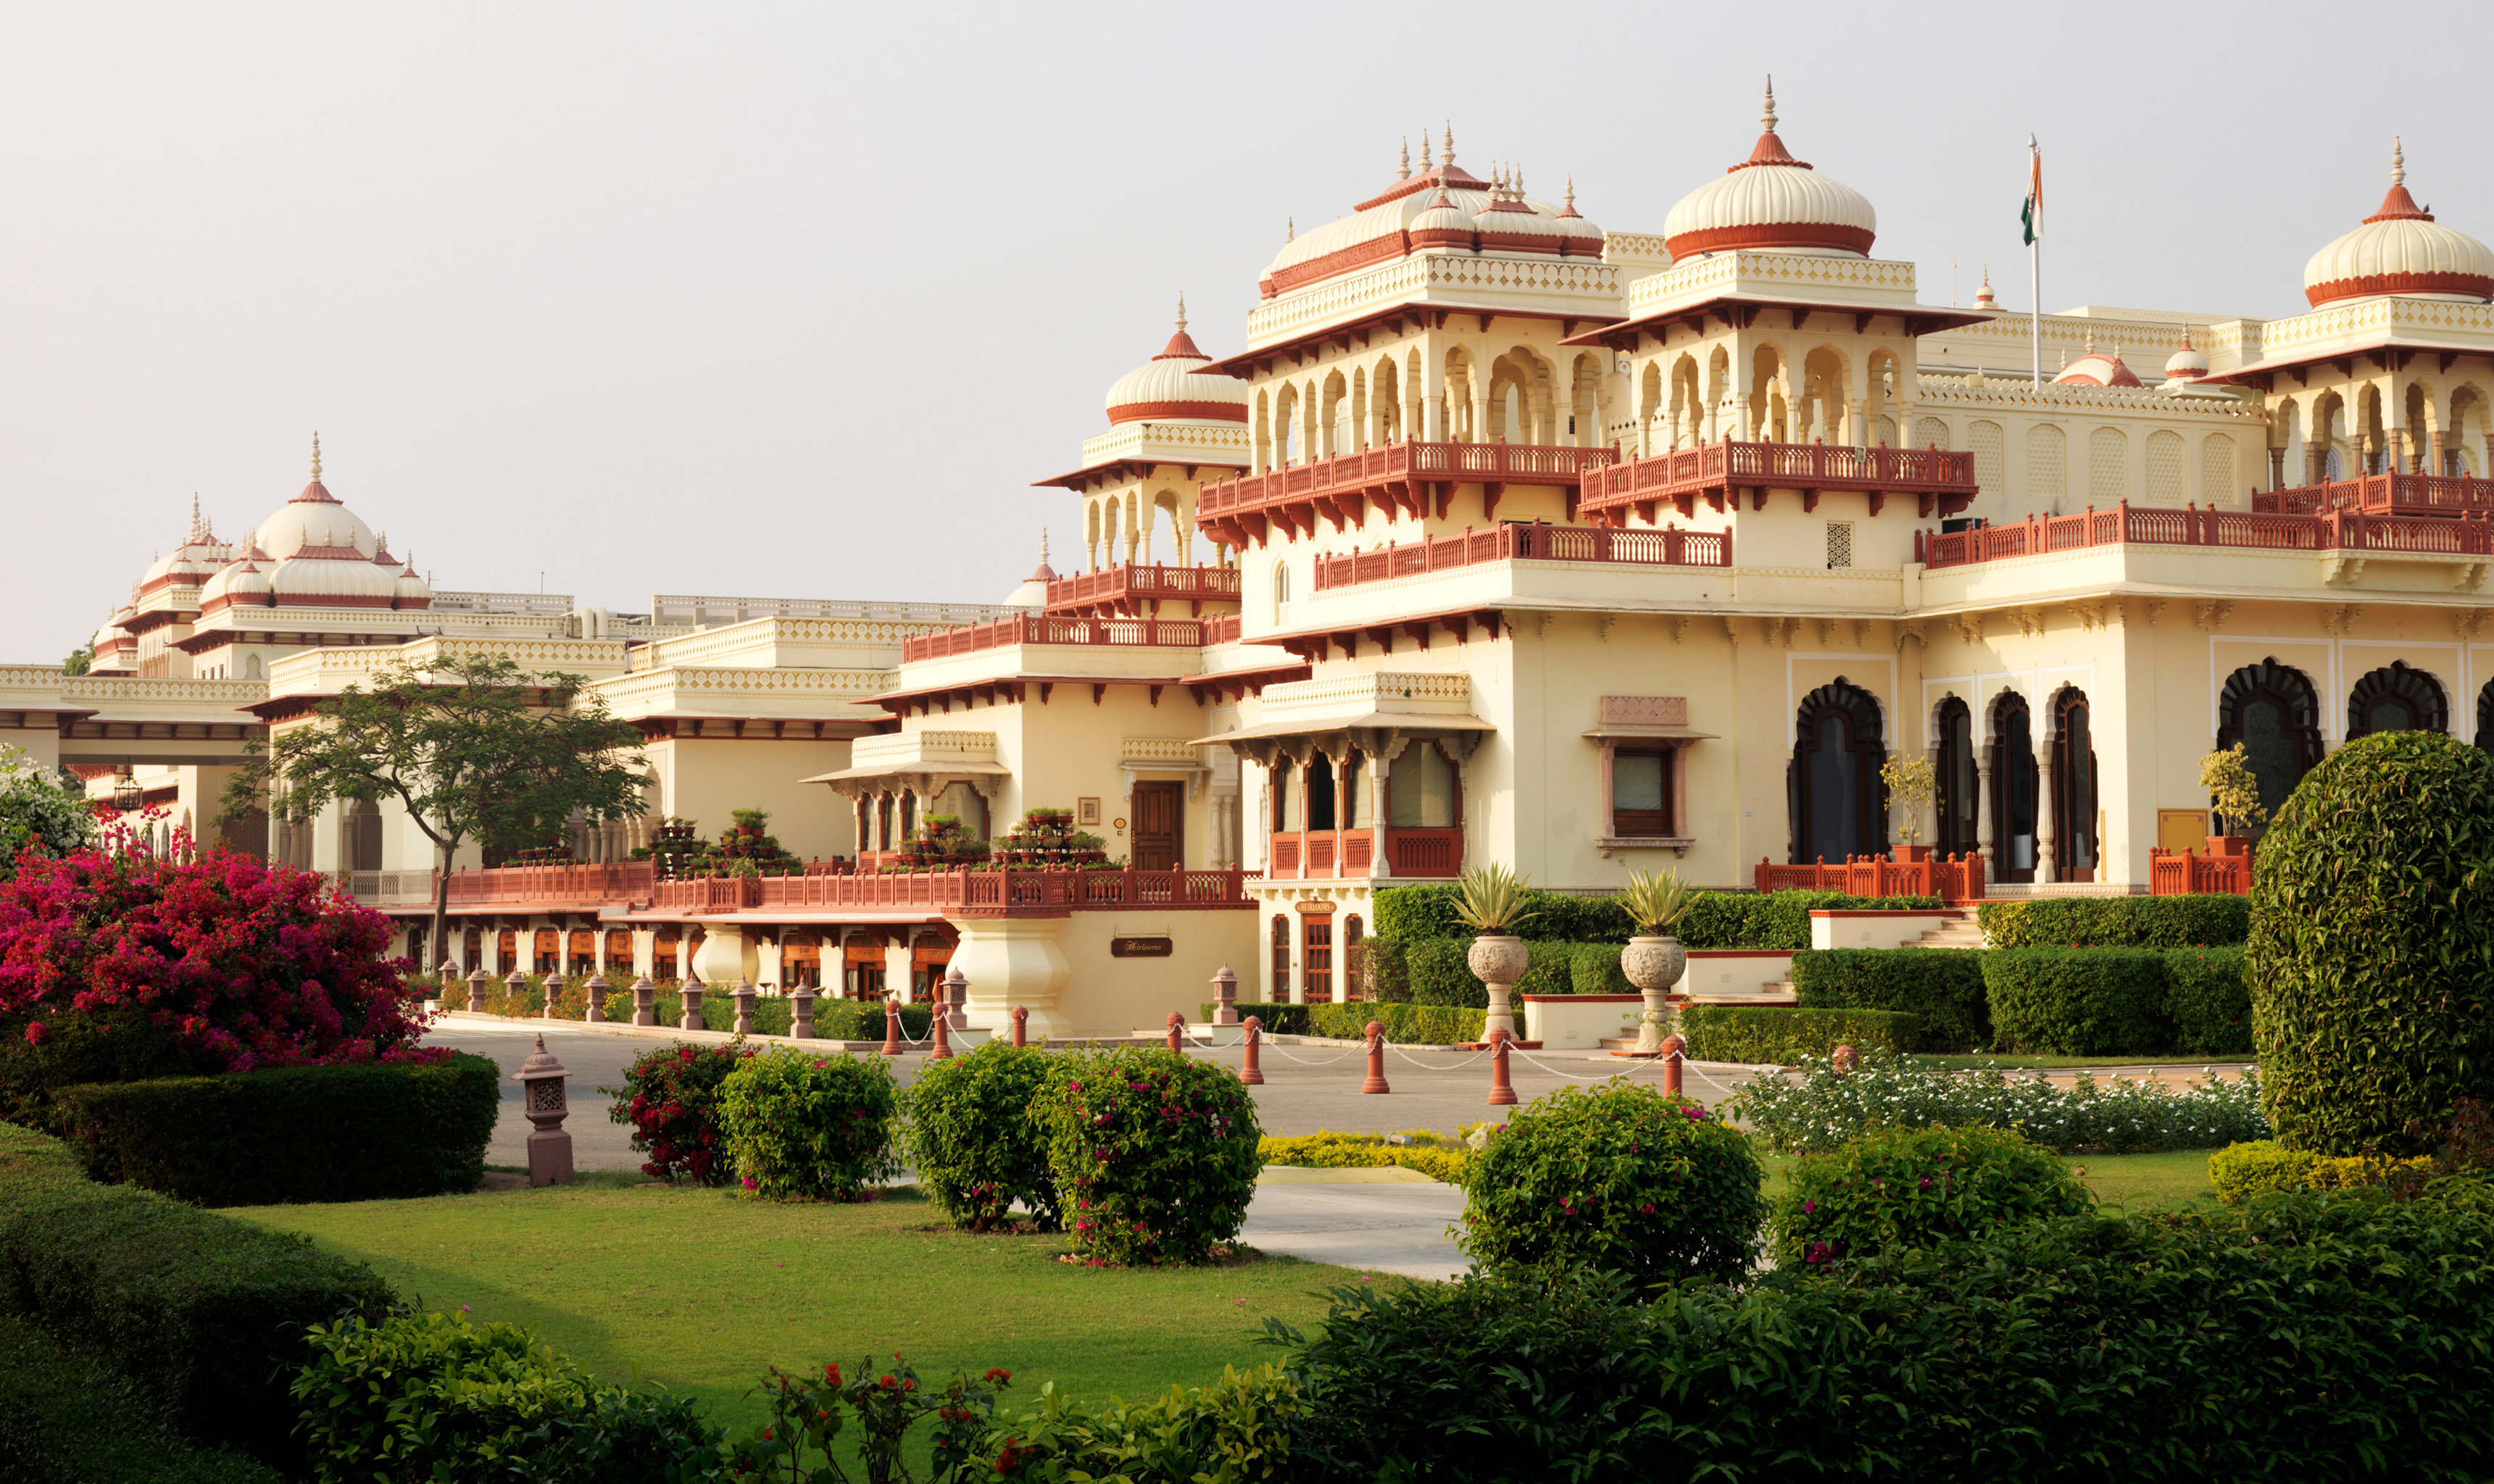 Architecture Buildings Elegant Exterior Grounds Luxury Resort grass building palace house mansion old place of worship government building stone